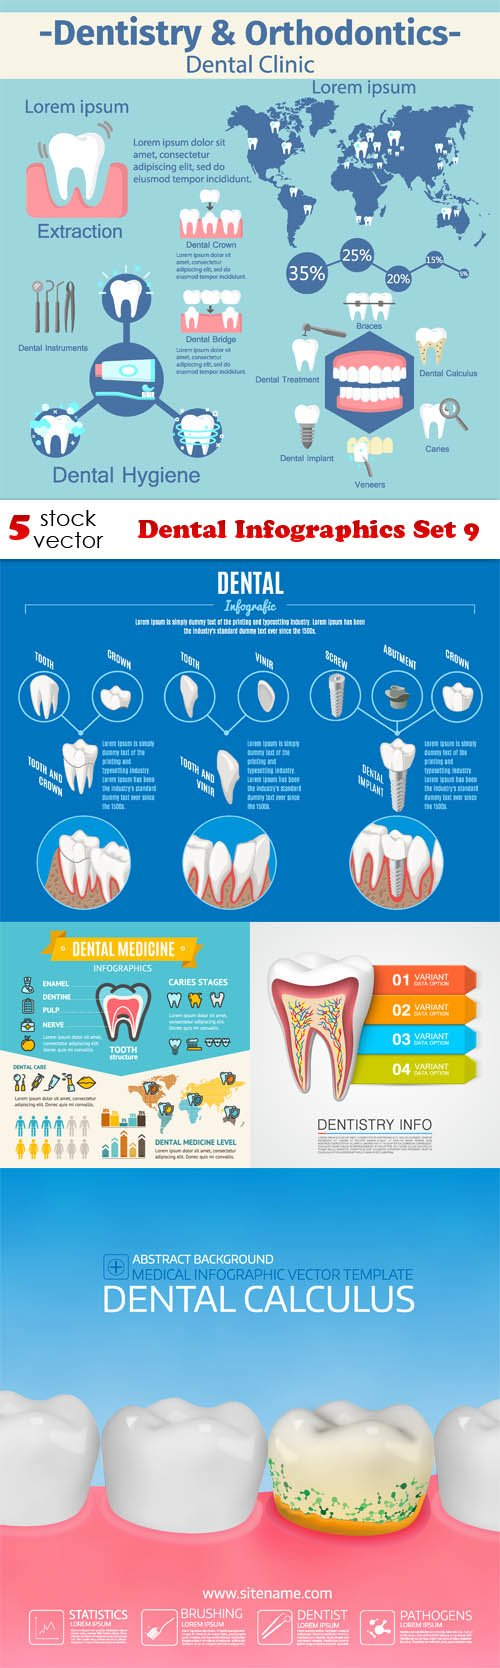 Vectors - Dental Infographics Set 9